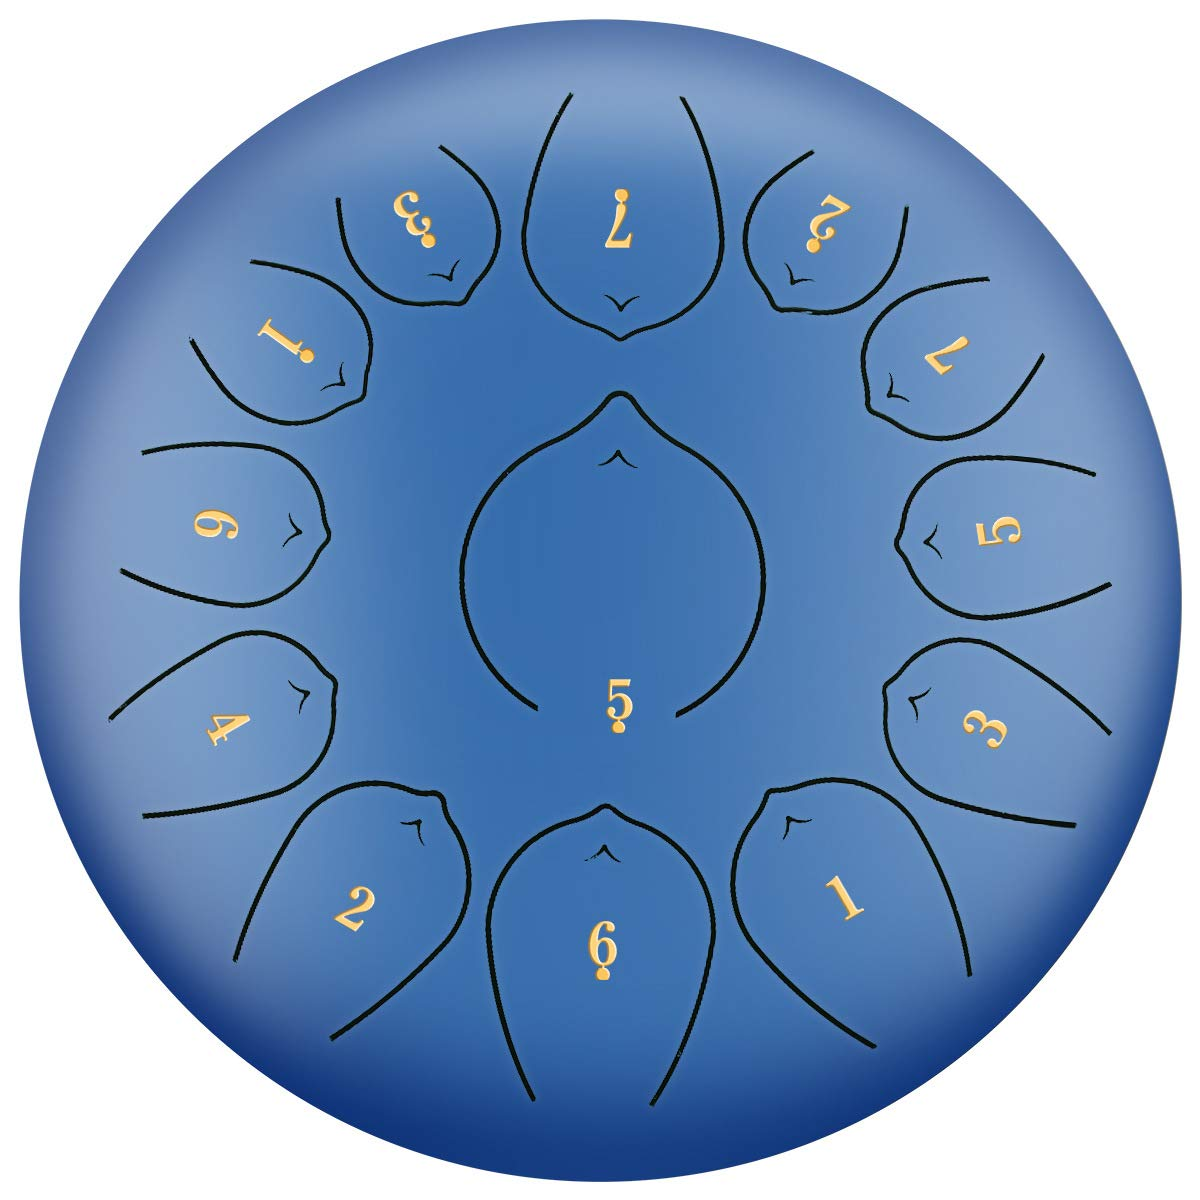 LLC - Drums Steel Tongue Drum 13 Notes 12 Inch/30cm Chakra Drum, for Camping, Yoga, Meditation, Music Therapy, Padded Travel Bag, Mallets, Tonic Sticker,Blue by LLC - Drums